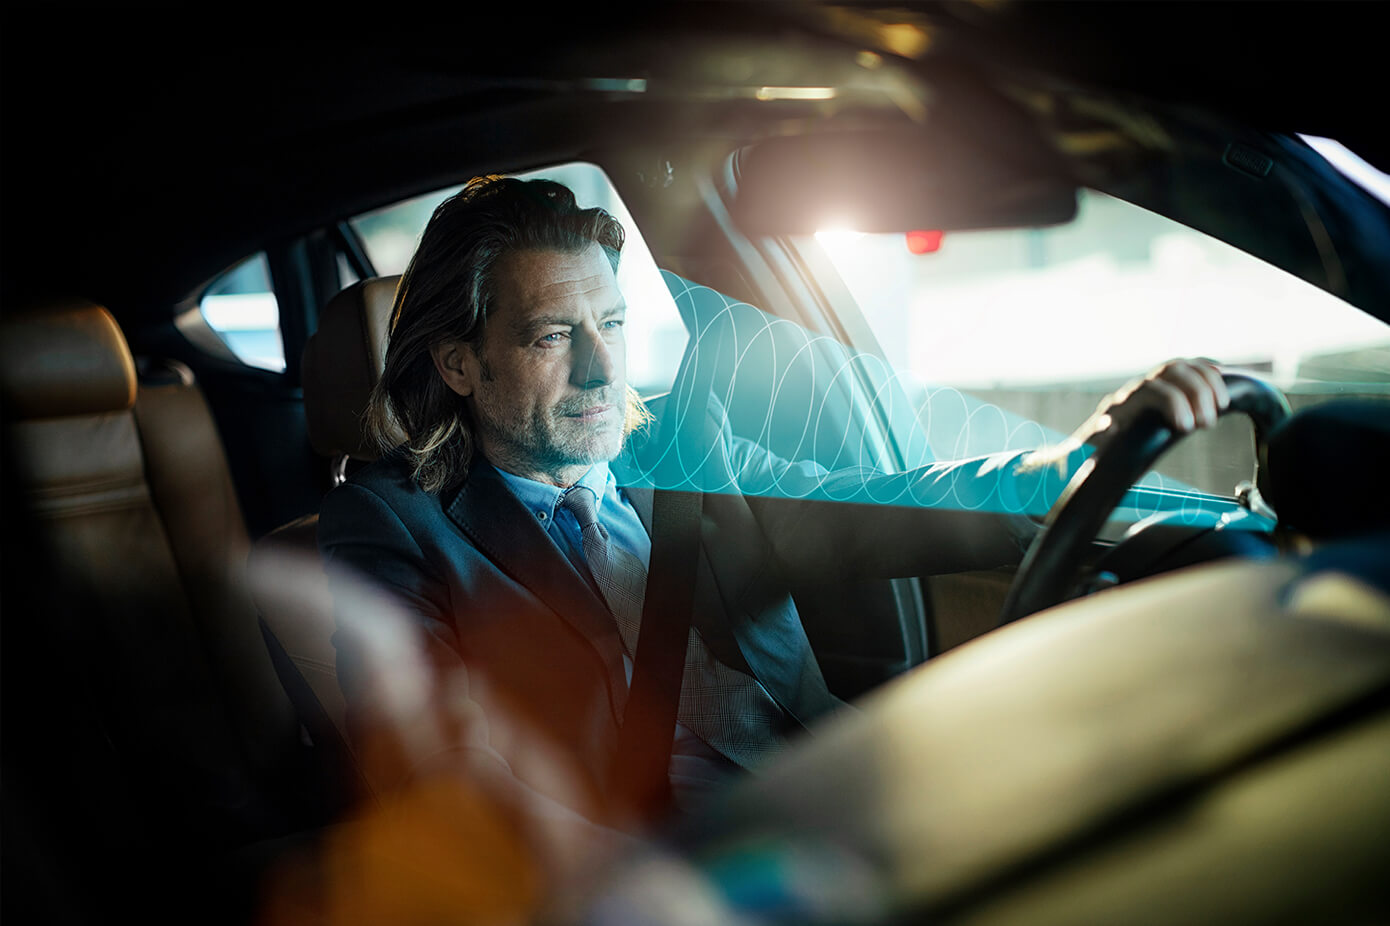 Driver monitoring and identification systems - 3D sensing solutions